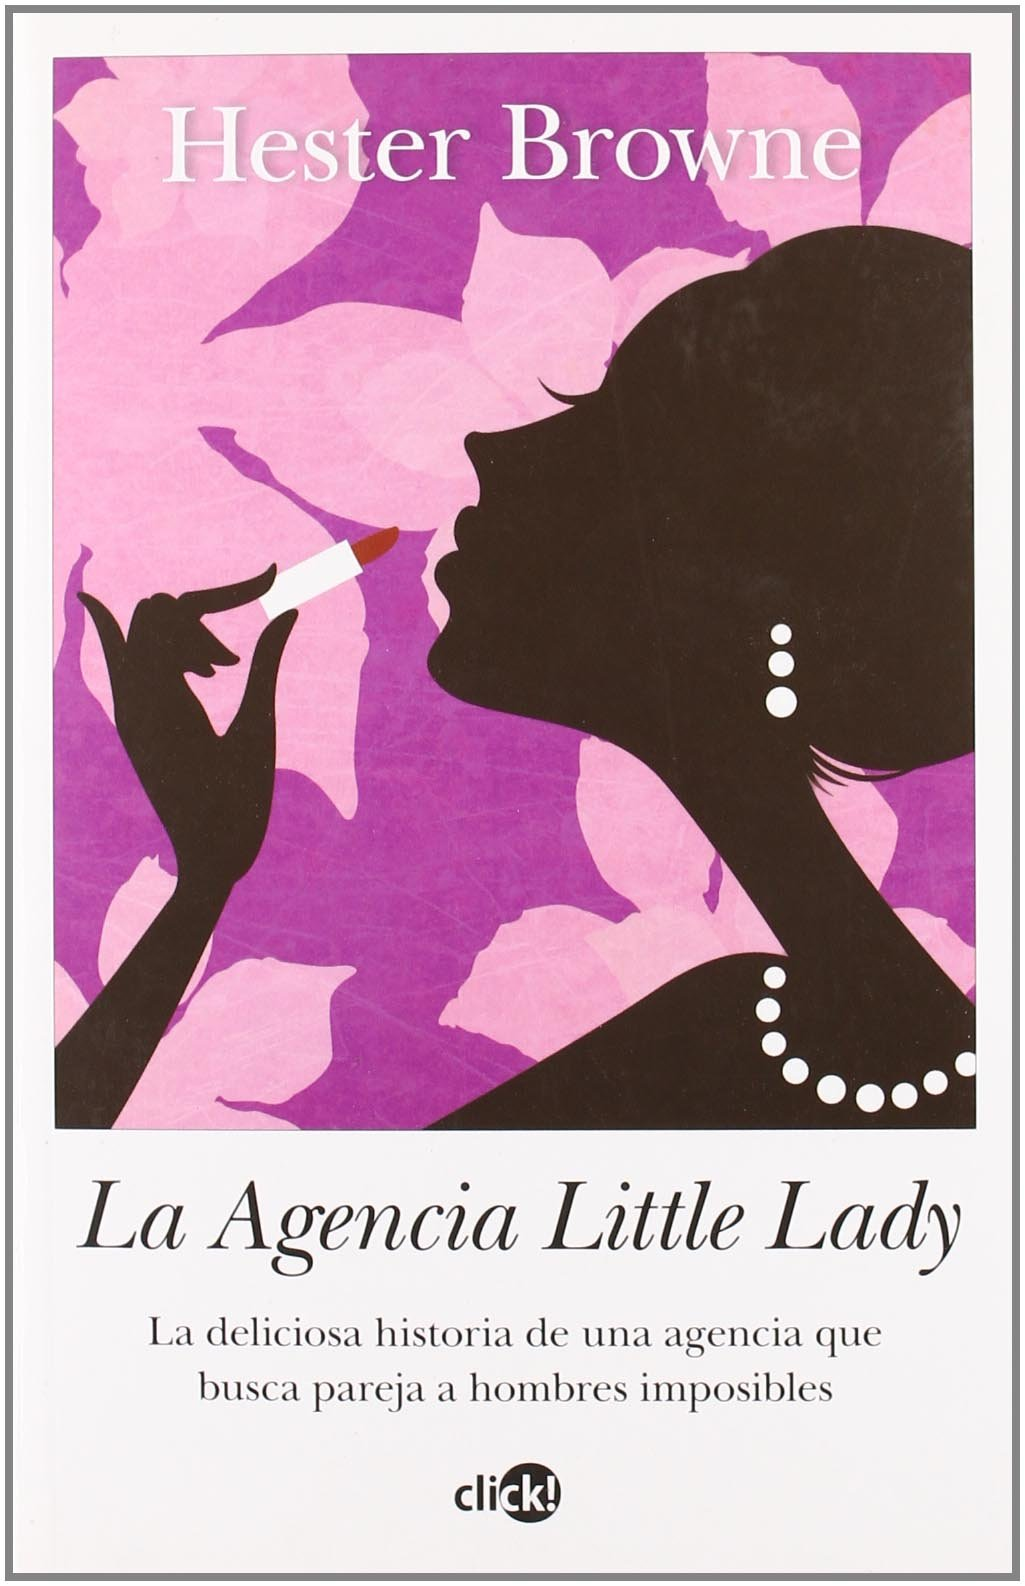 Amazon.com: La agencia little lady/ The Little Lady Agency (Spanish Edition) (9788496632448): Hester Browne: Books